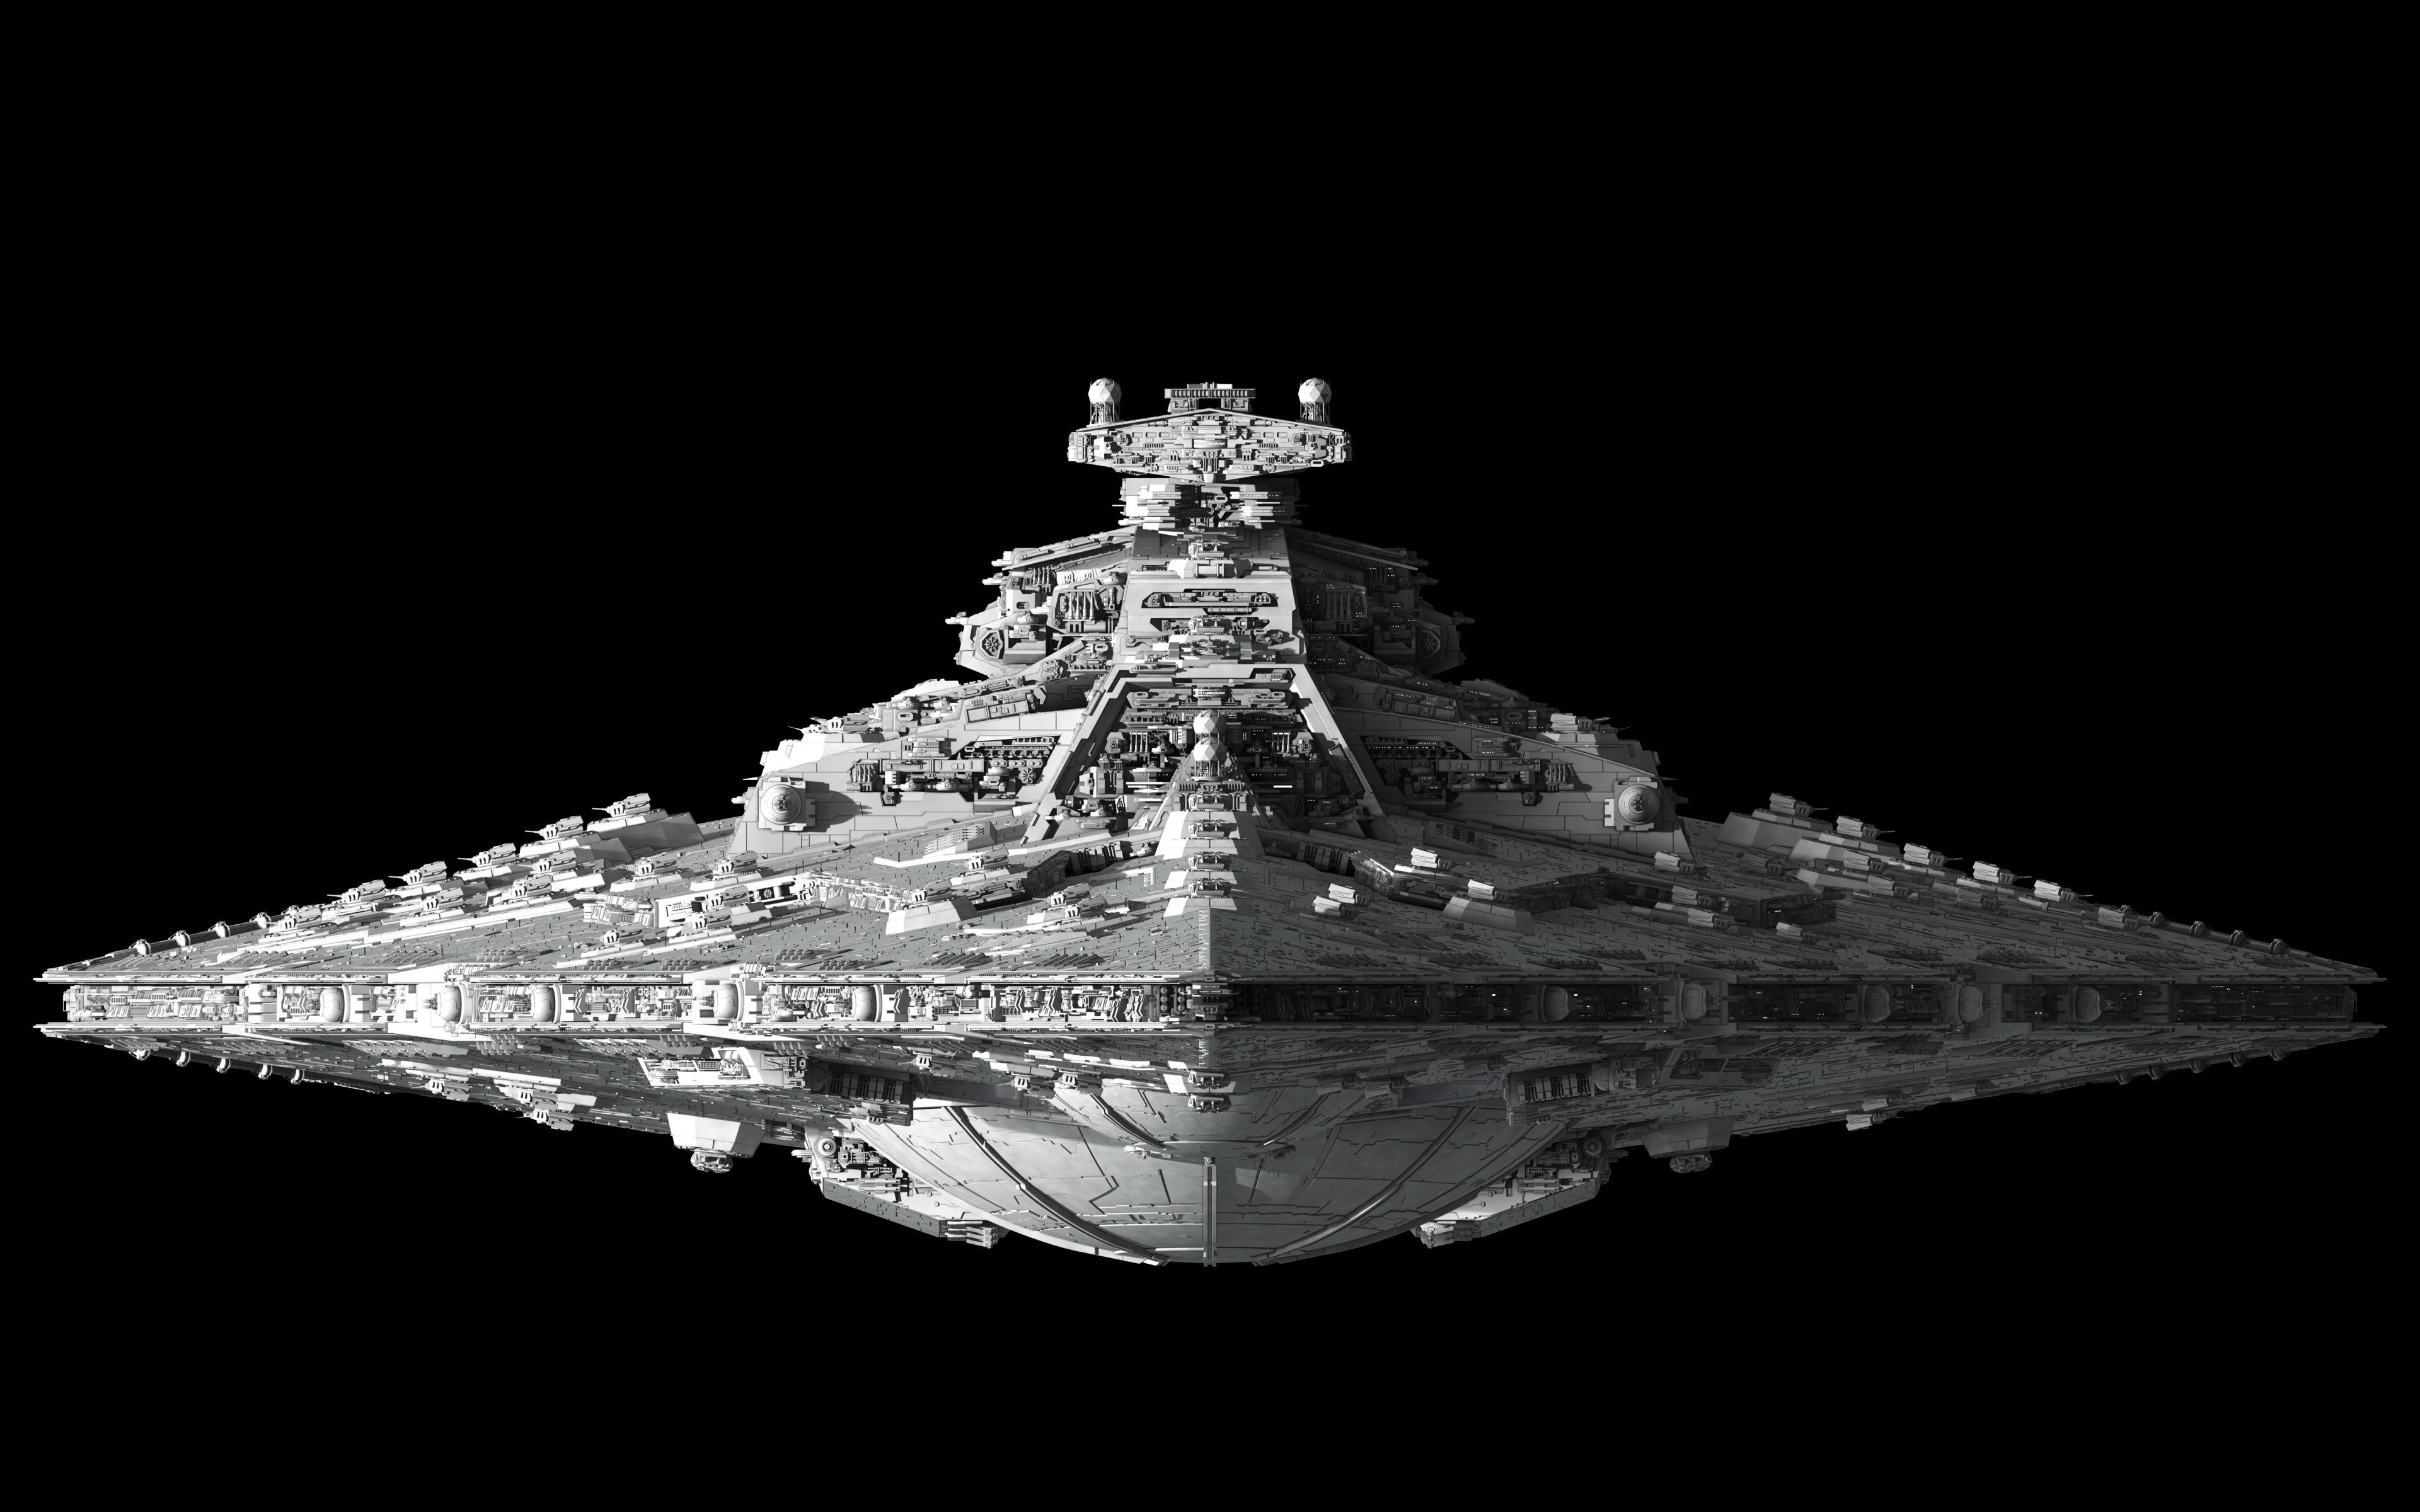 611 star wars hd wallpapers | background images - wallpaper abyss